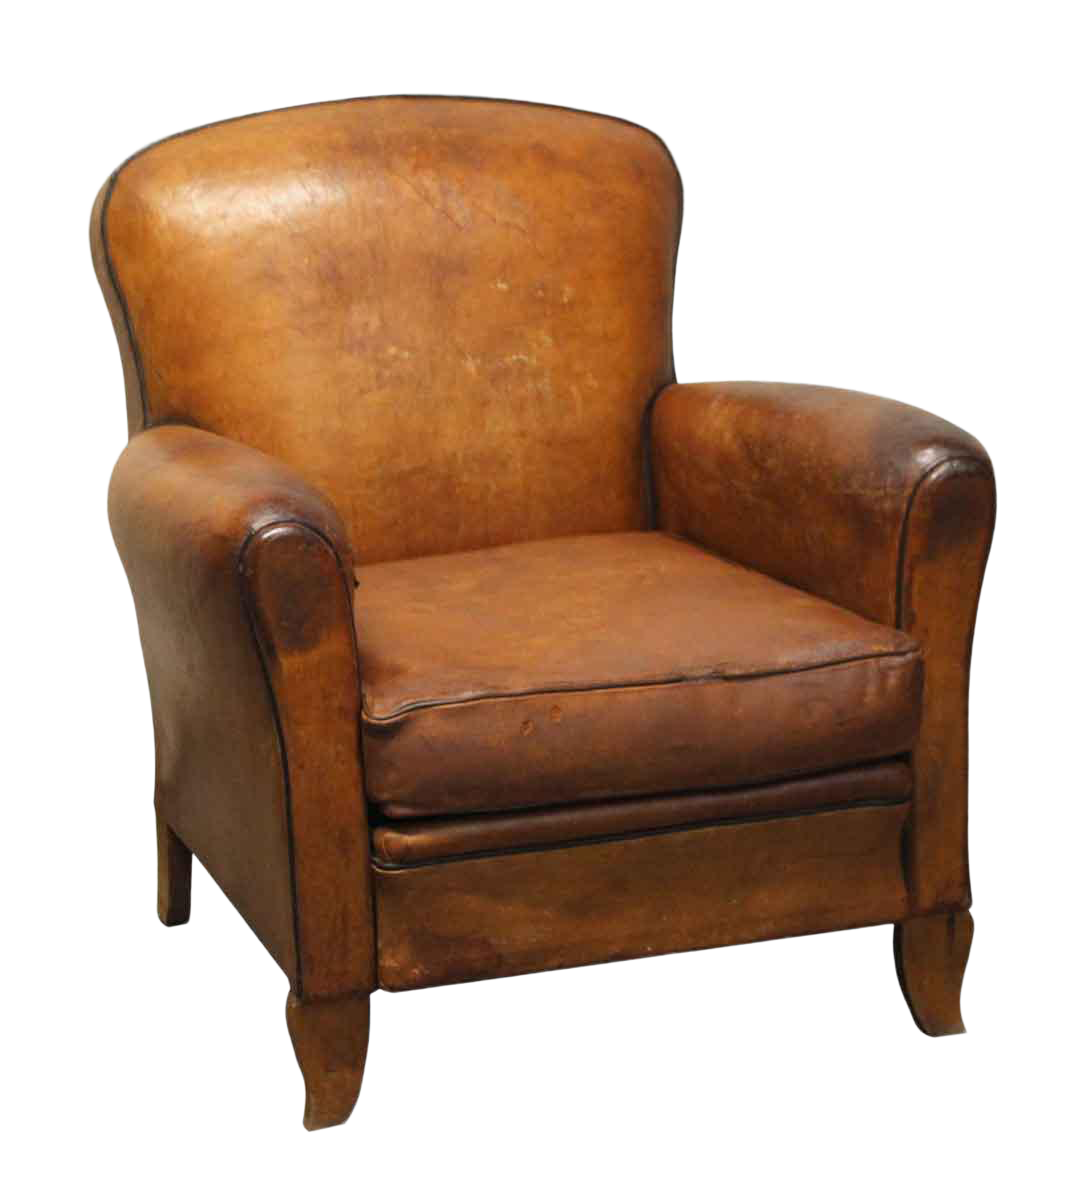 Vintage Mid Century French Leather Club Chair On Chairish Com Vintage Leather Chairs Leather Chair Living Room Brown Leather Chairs Leather club chairs for sale